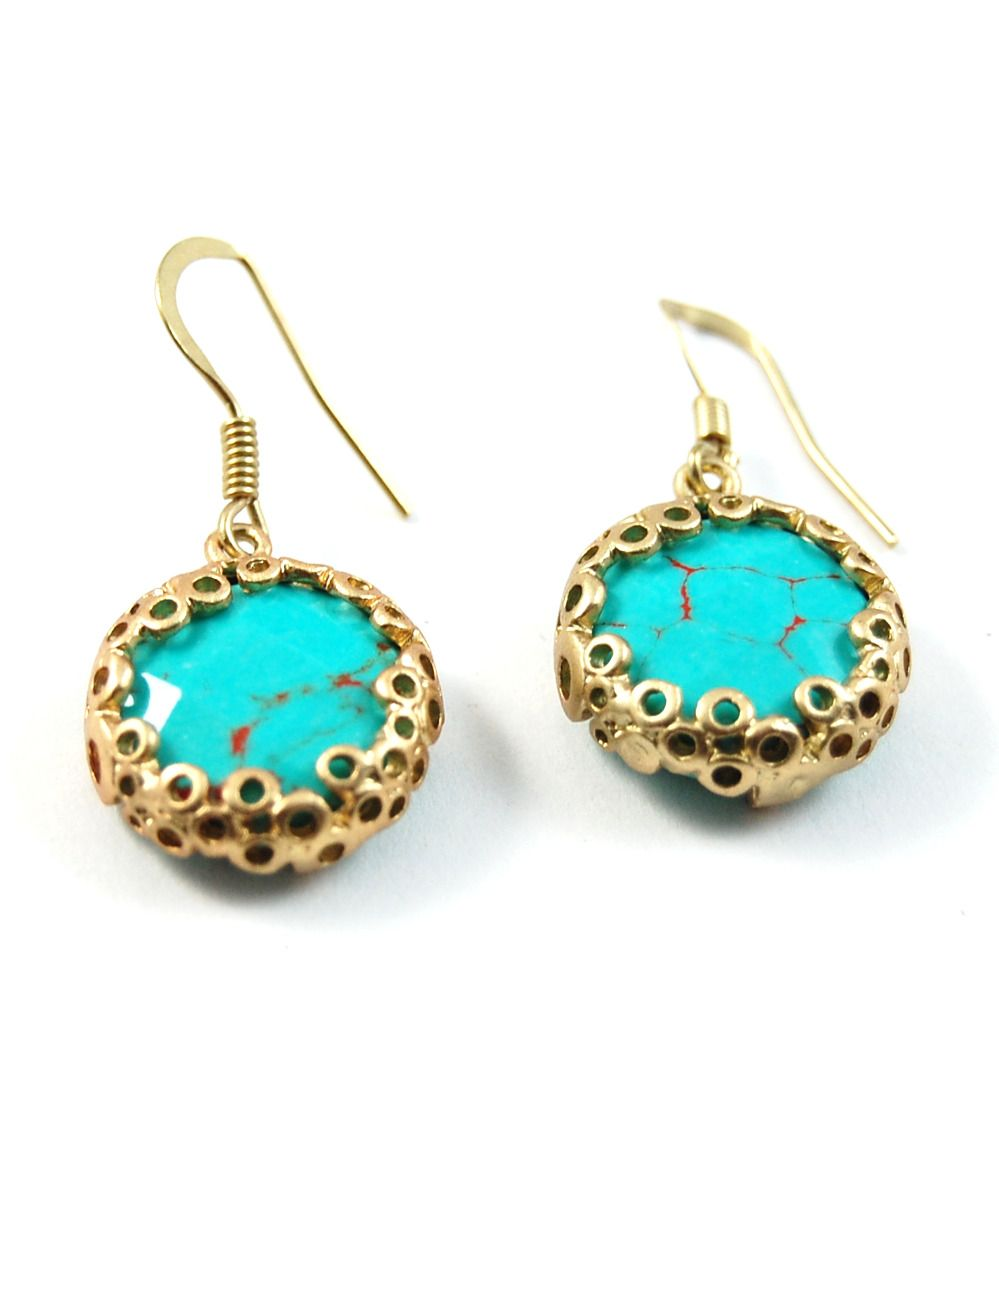 Natural turquoise stone with red marbling creates these simple and versatile earrings that are great for all occasions. Item Details:Size : 1/2